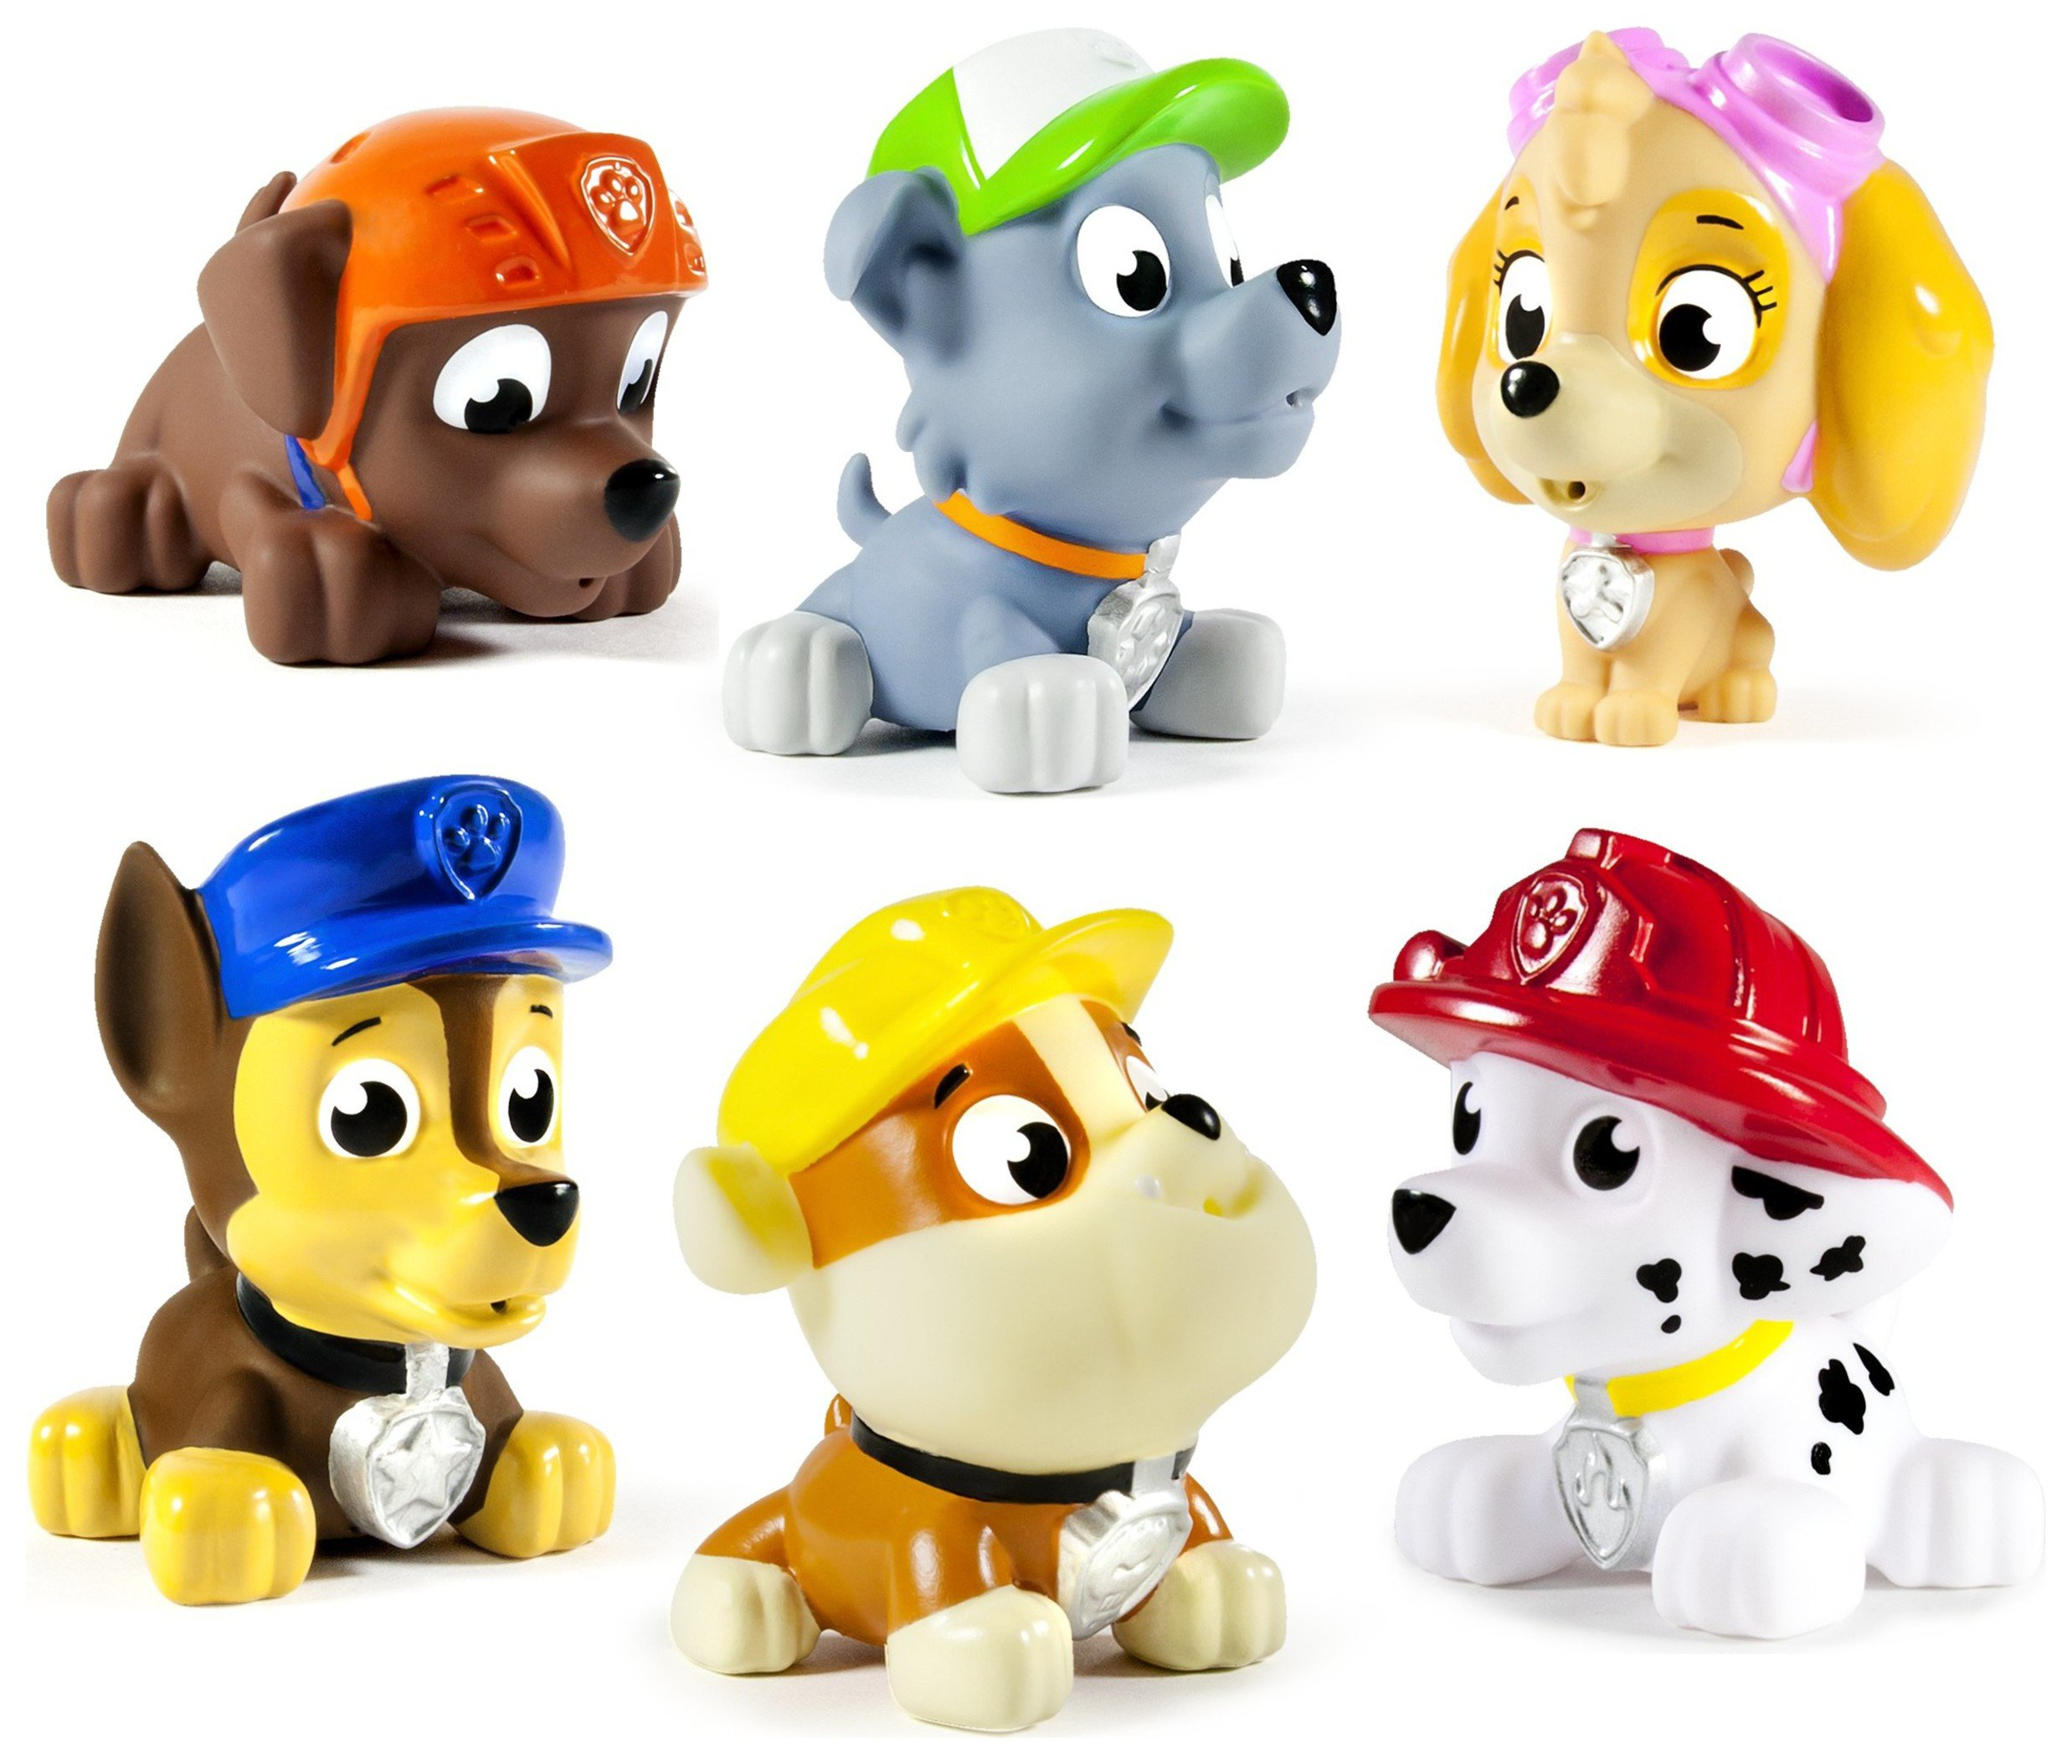 Image of PAW Patrol Pup Squirters Gift Set.